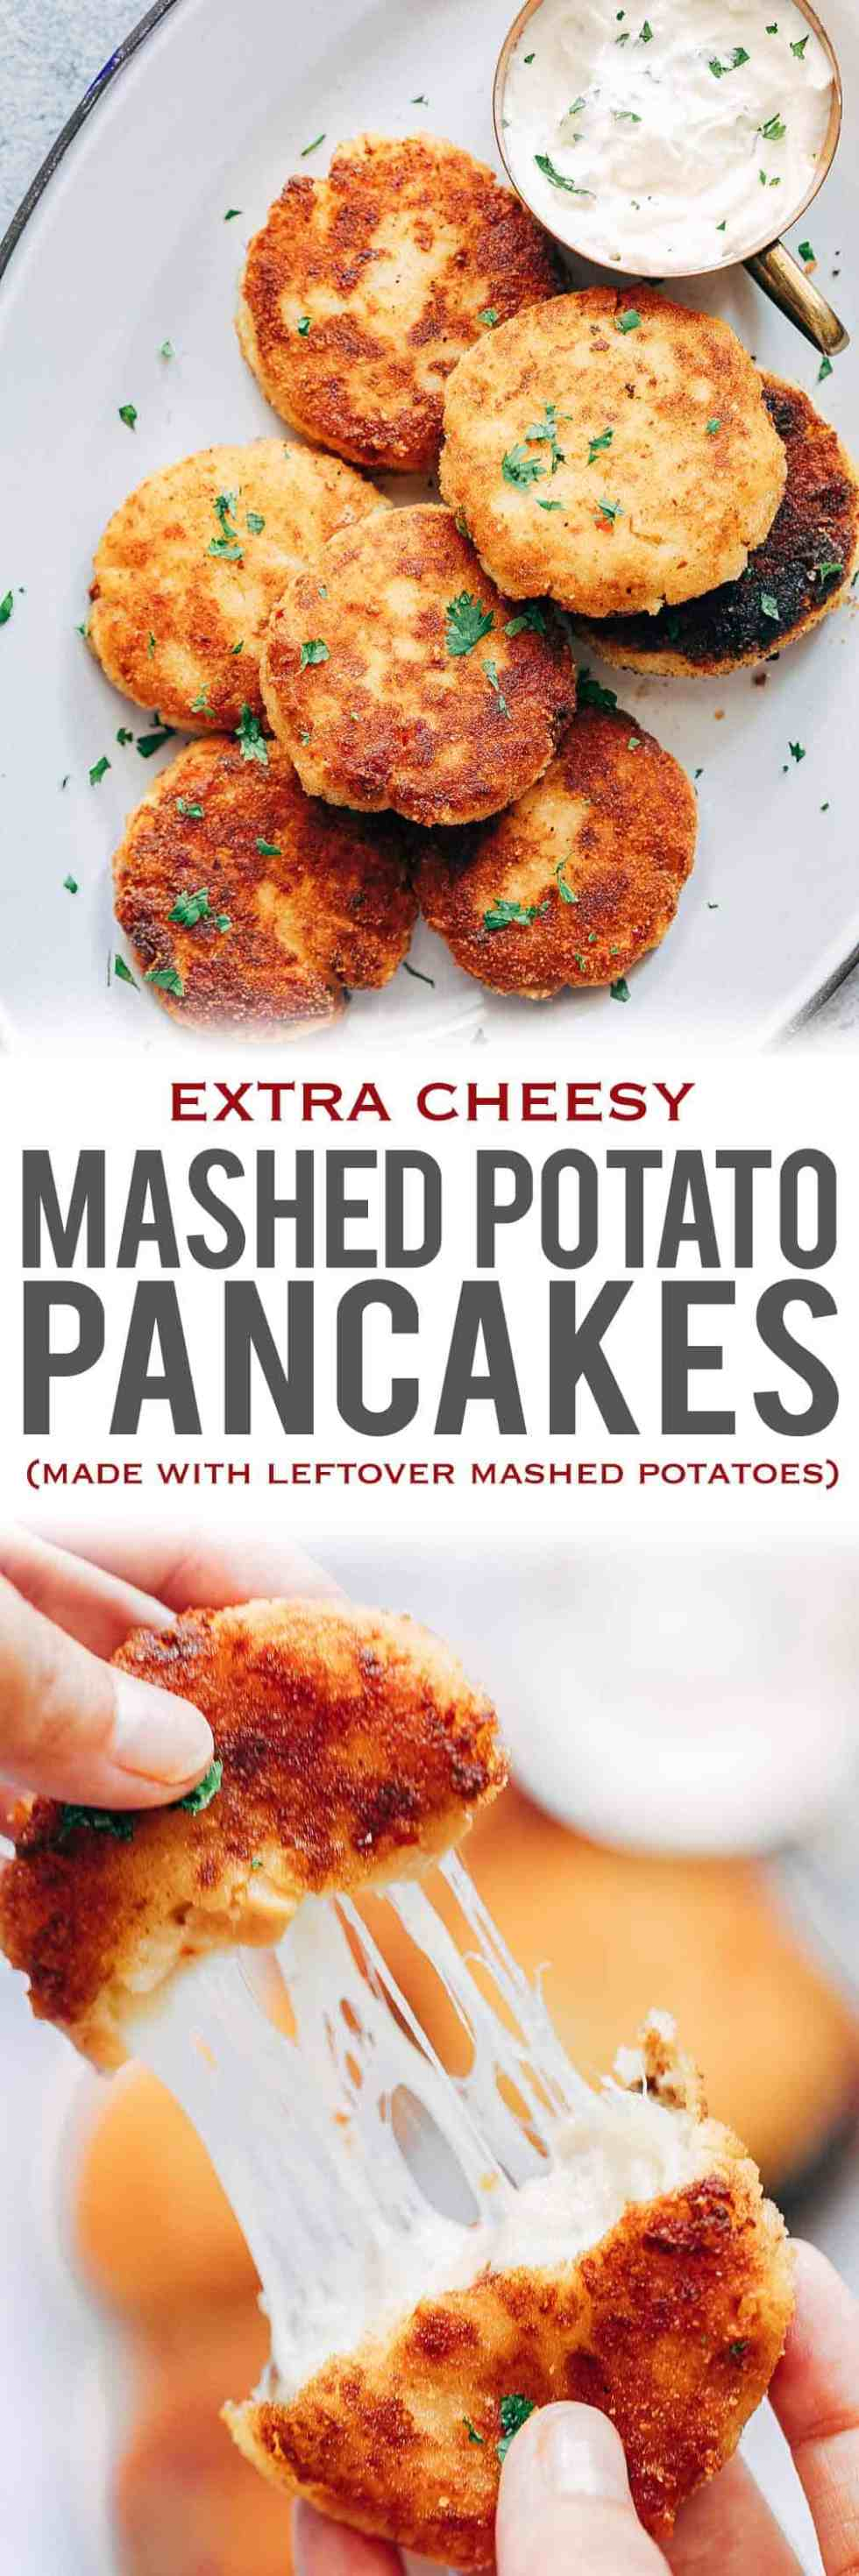 How To Make Fried Potato Cakes With Leftover Mashed Potatoes